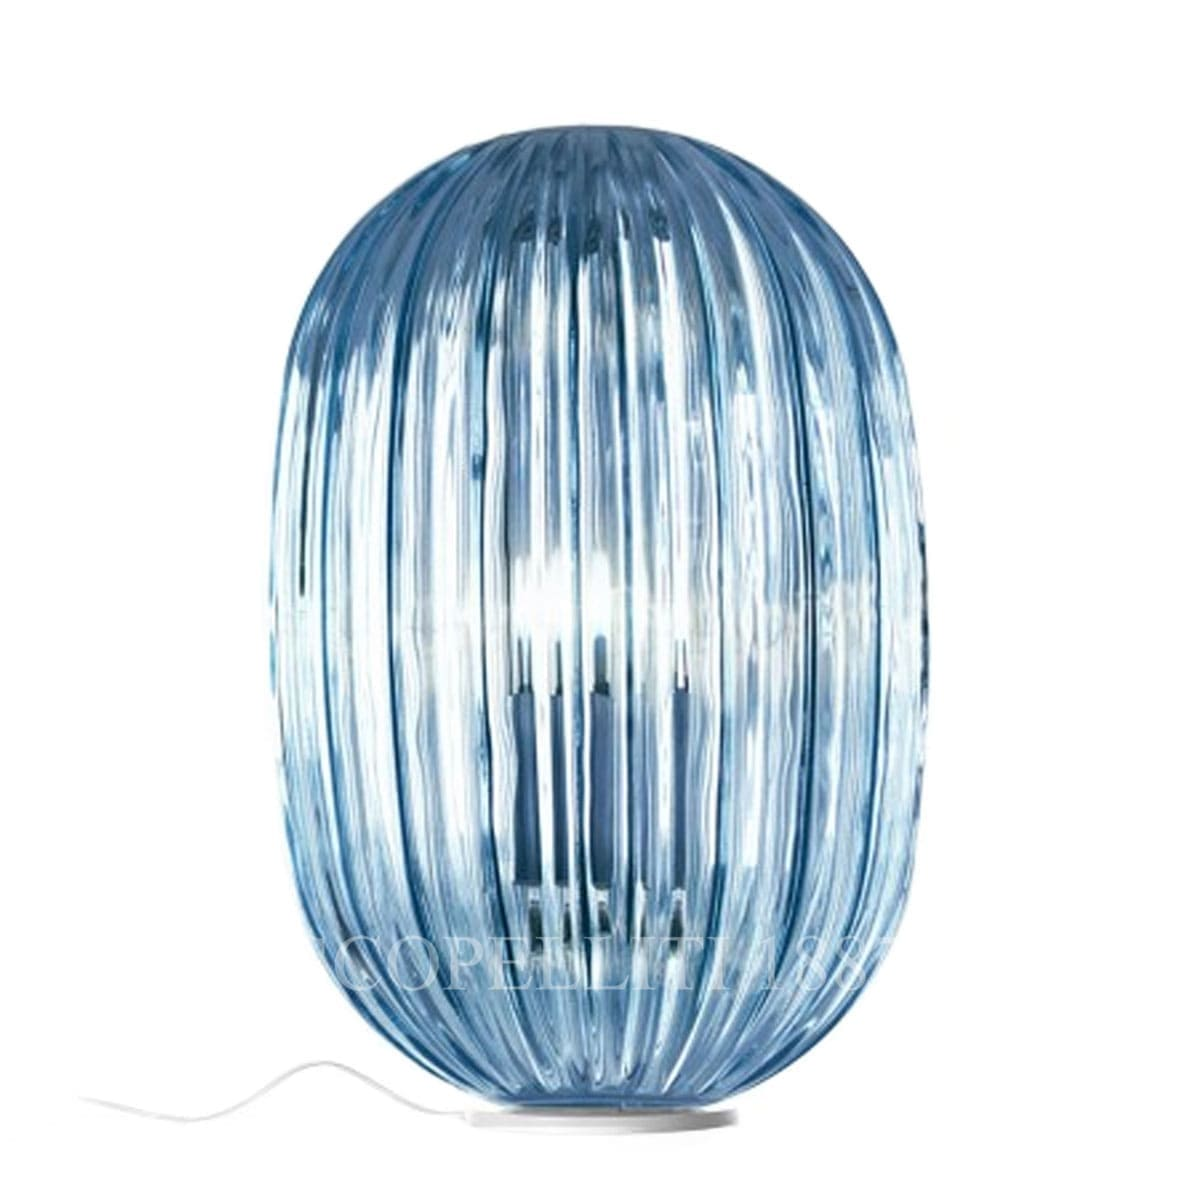 Foscarini Plass Media Light Blue Table Lamp